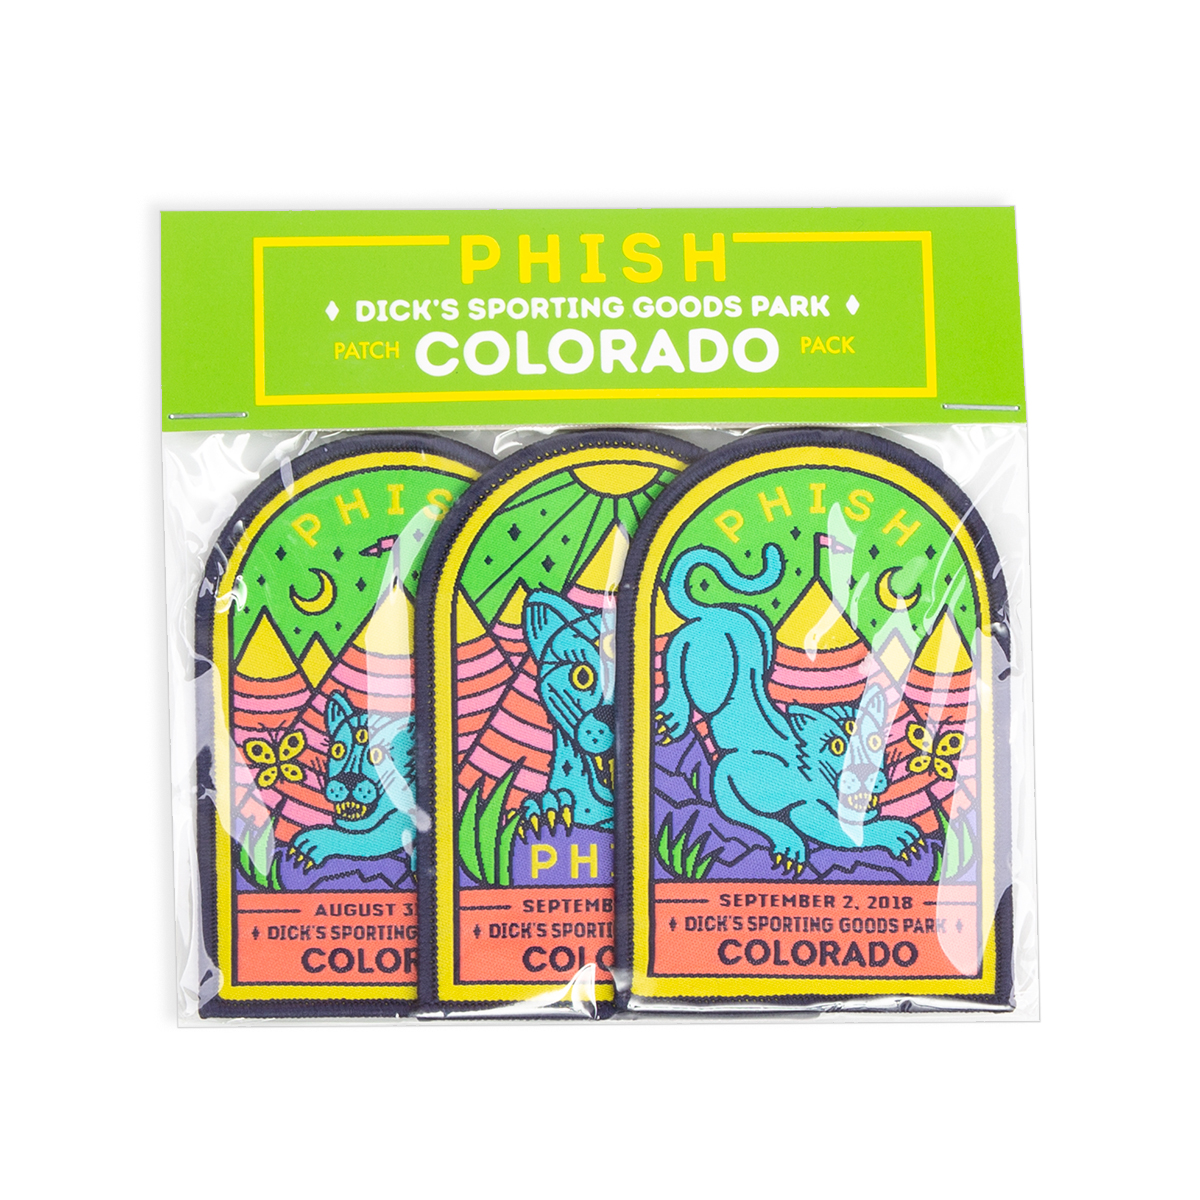 Colorado Event Patches (set of 3)